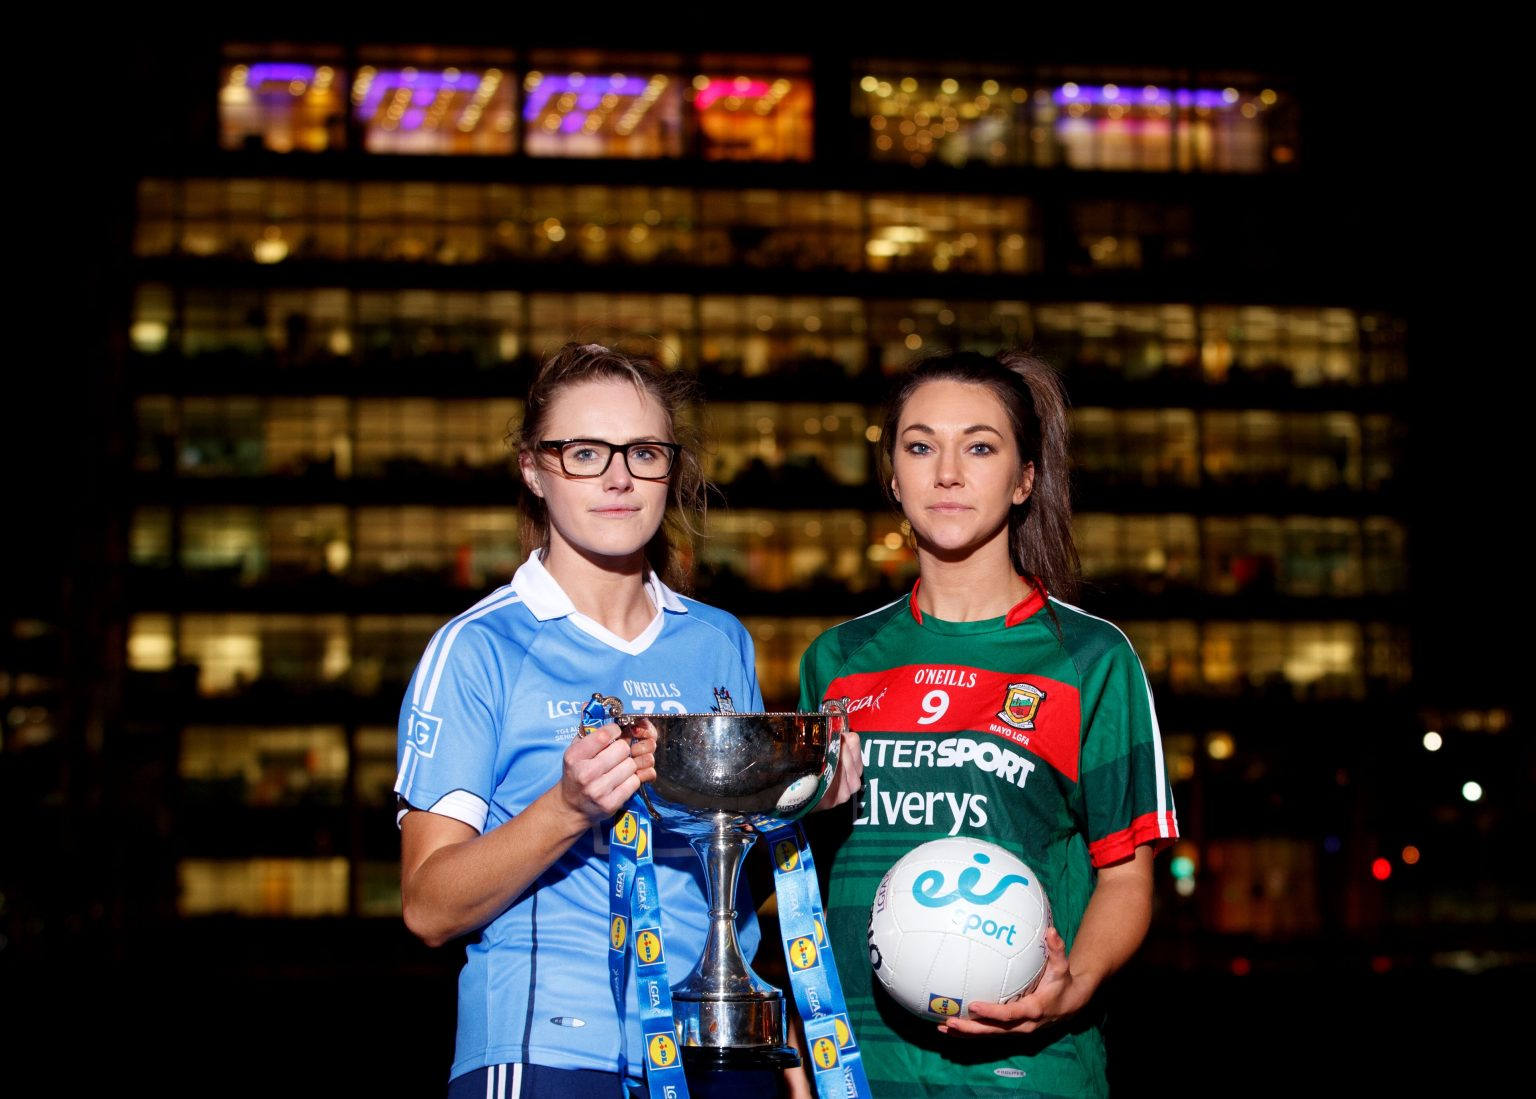 Dublin And Mayo Renew Their Rivalry This Evening In The Lidl Ladies National Football League In McHale Park In Castlebar